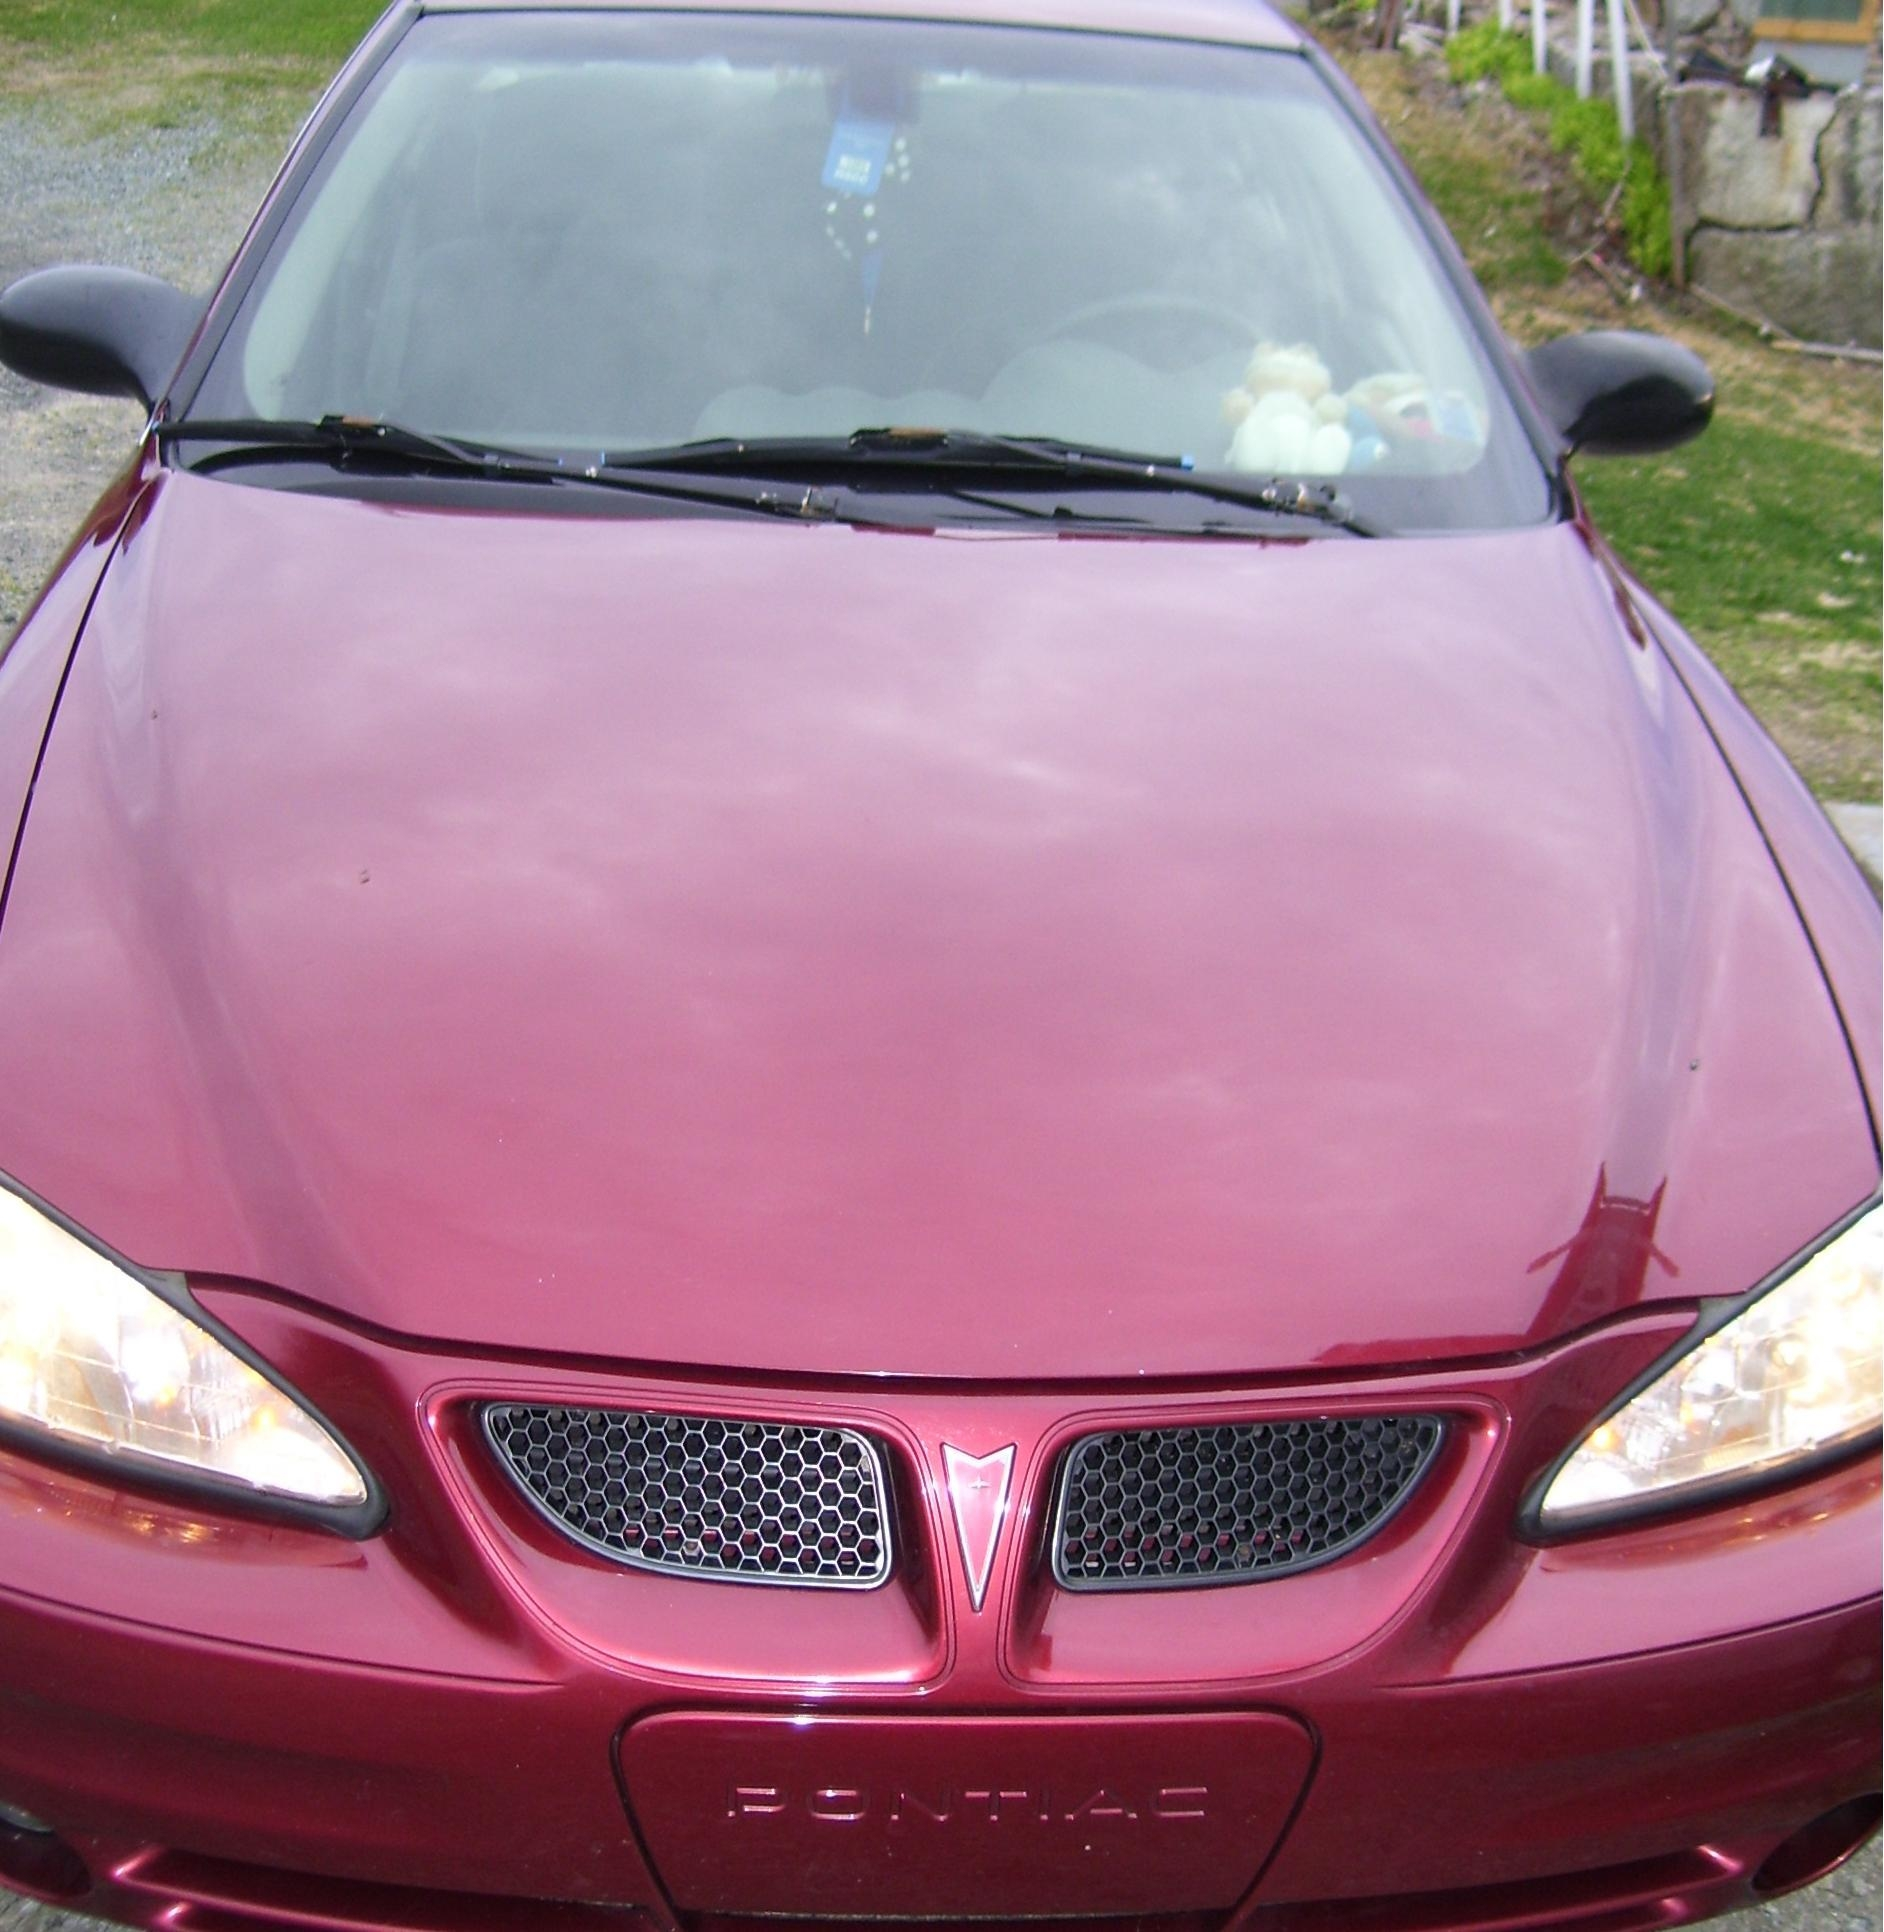 YectiR 2003 Pontiac Grand Am Specs, Photos, Modification